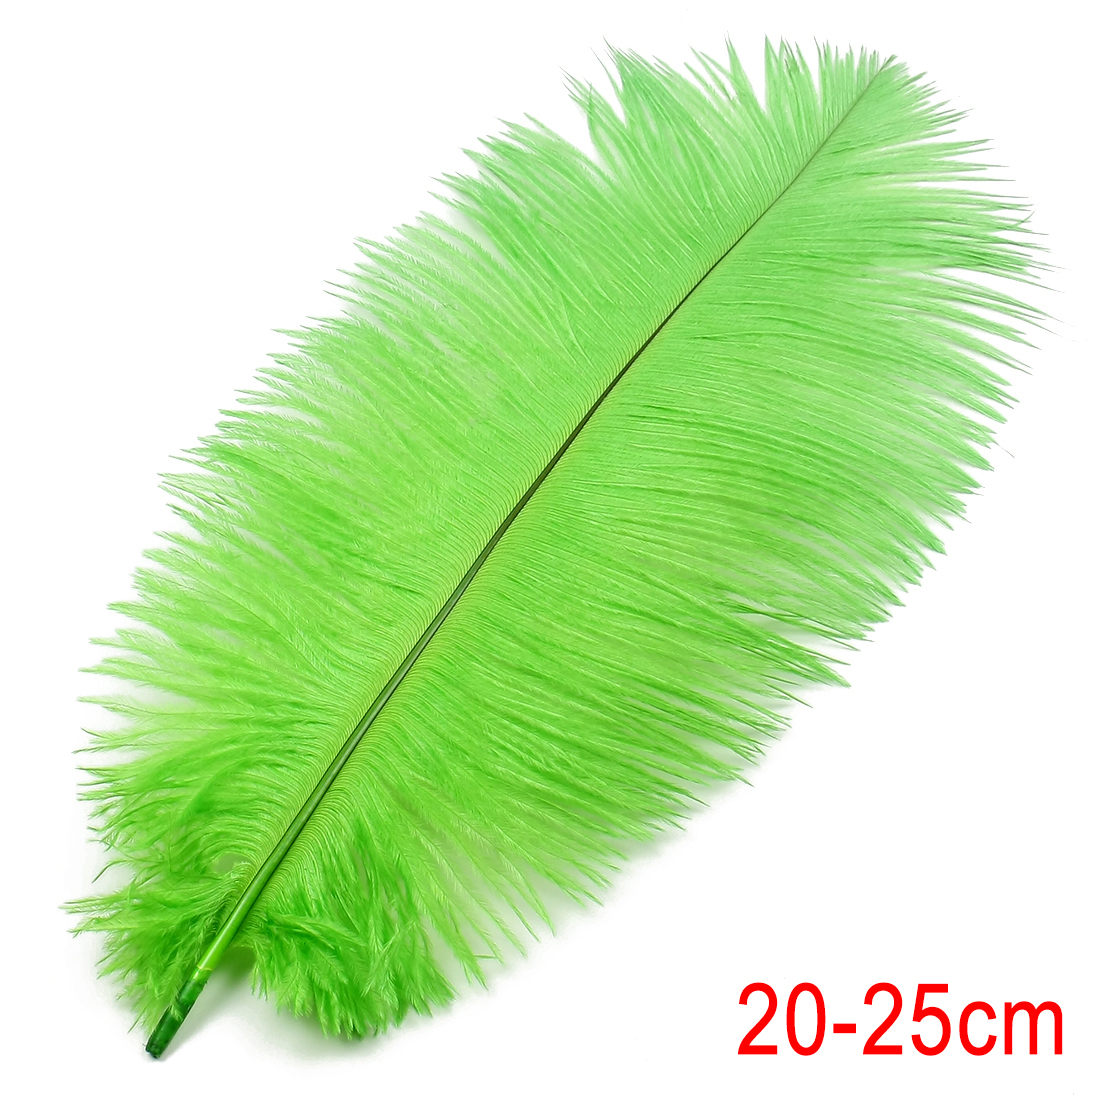 8-10 inch / 20-25cm Ostrich Feather for Wedding Party Decoration Green